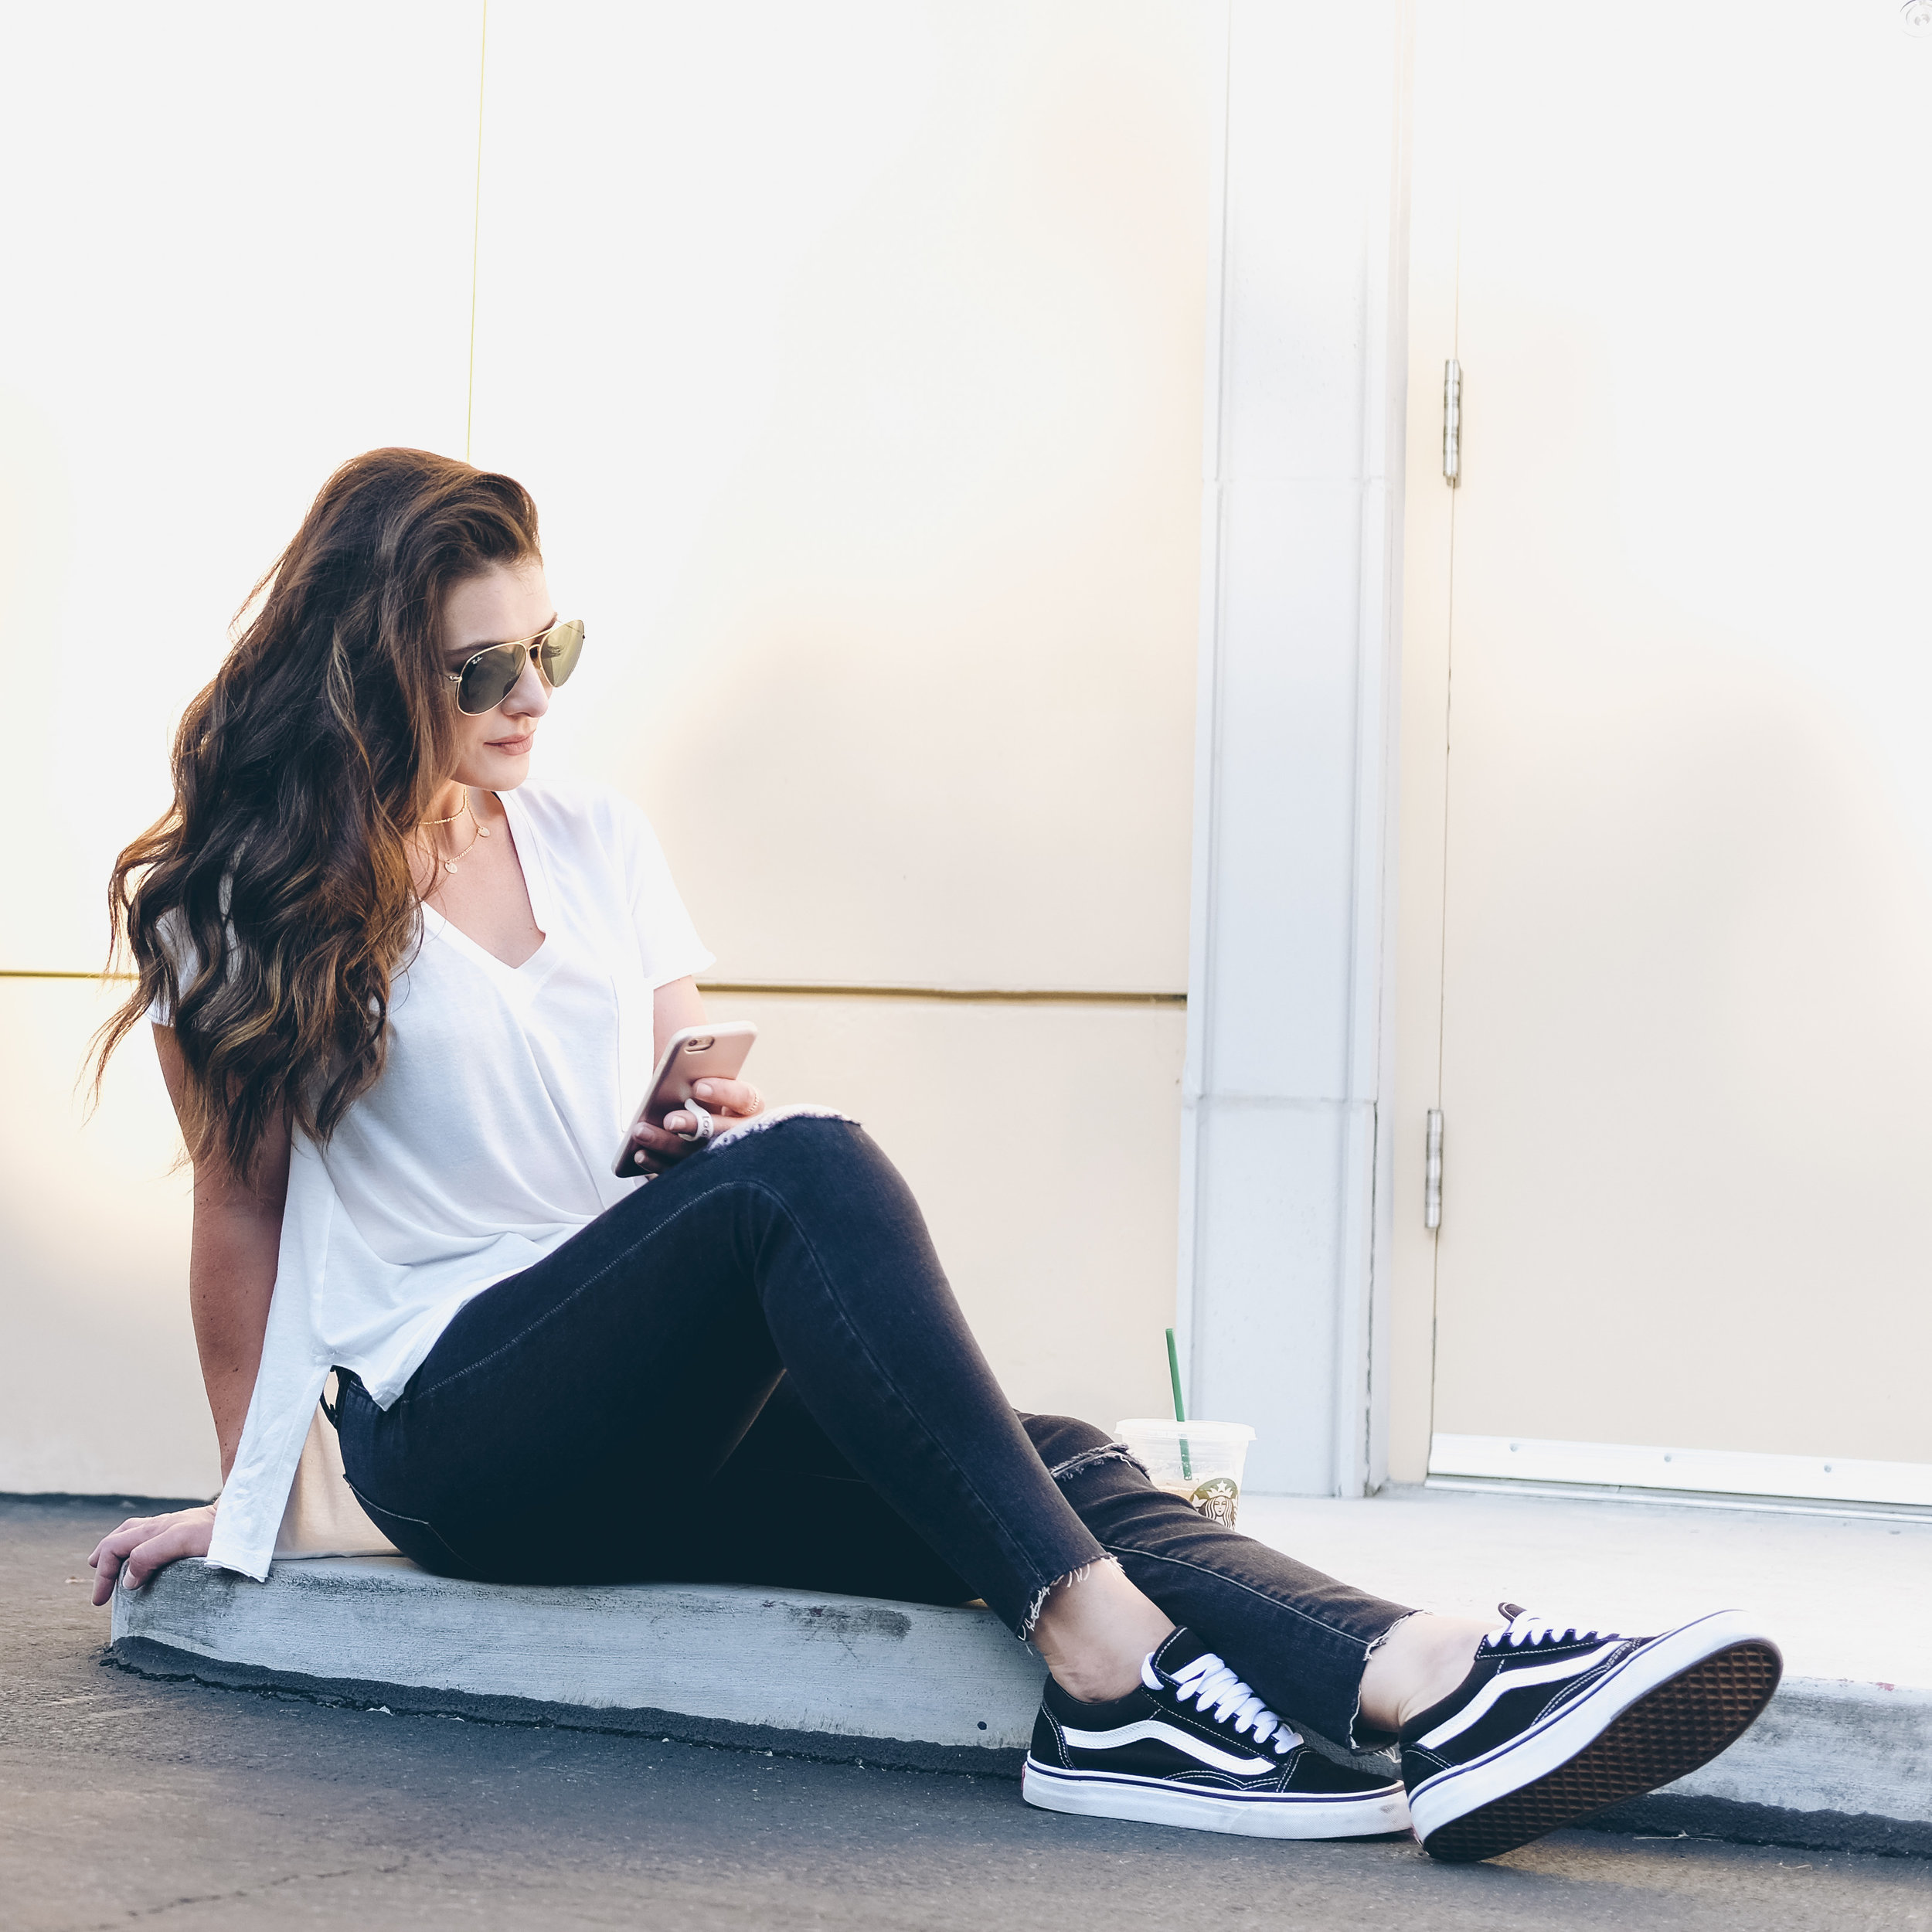 Caslon V Neck tee, Madewell 10 inch ripped skinny jeans, Vans Old School Core Classics.